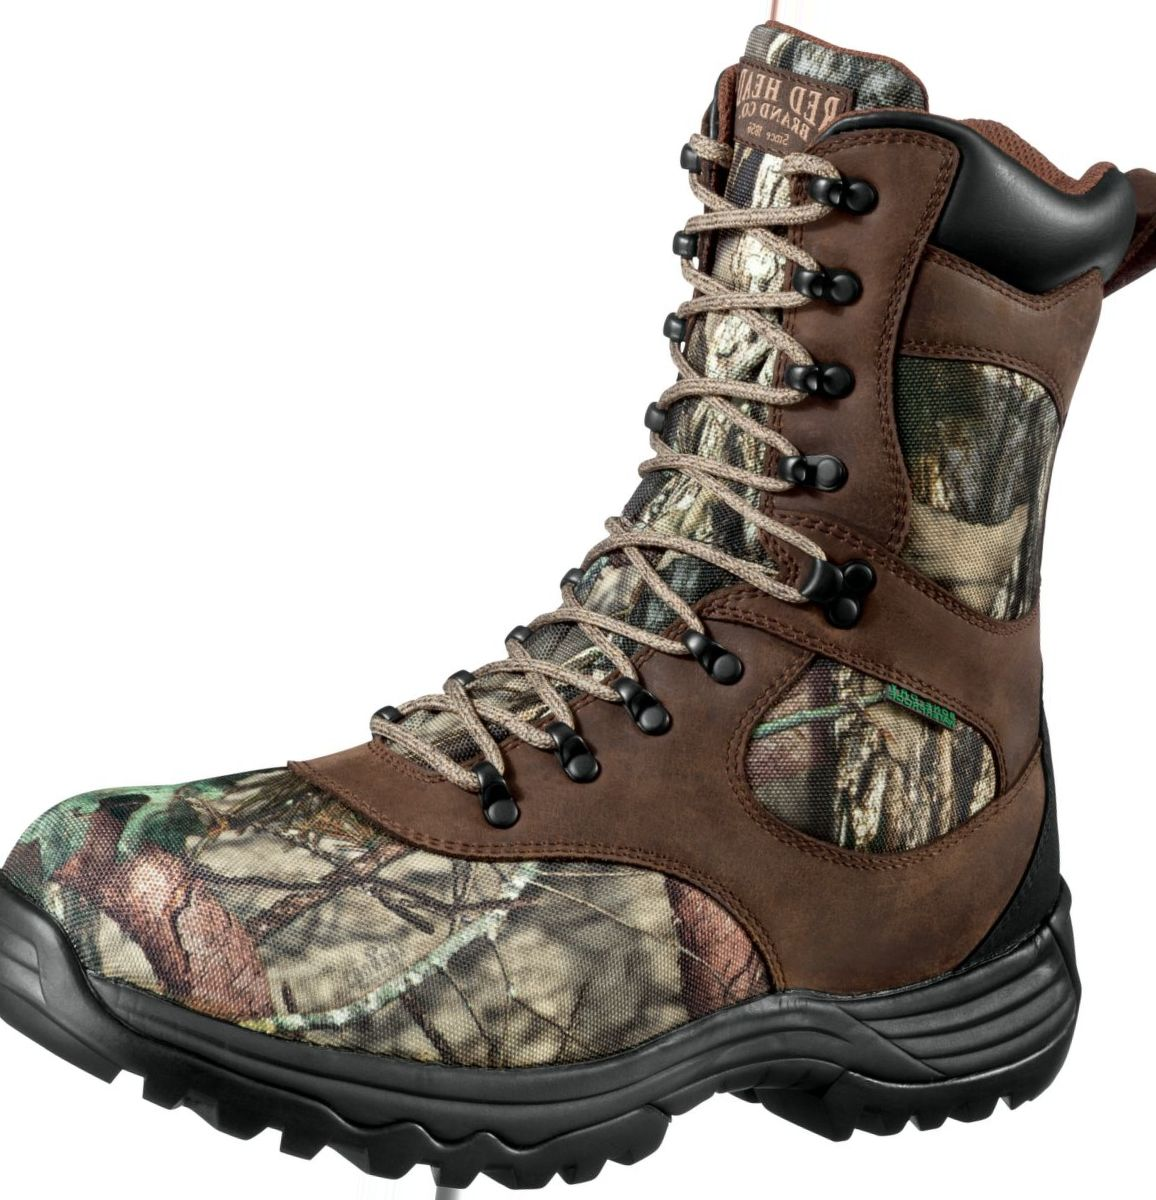 RedHead® Men's Expedition Ultra BONE-DRY® Insulated Waterproof Hunting Boots